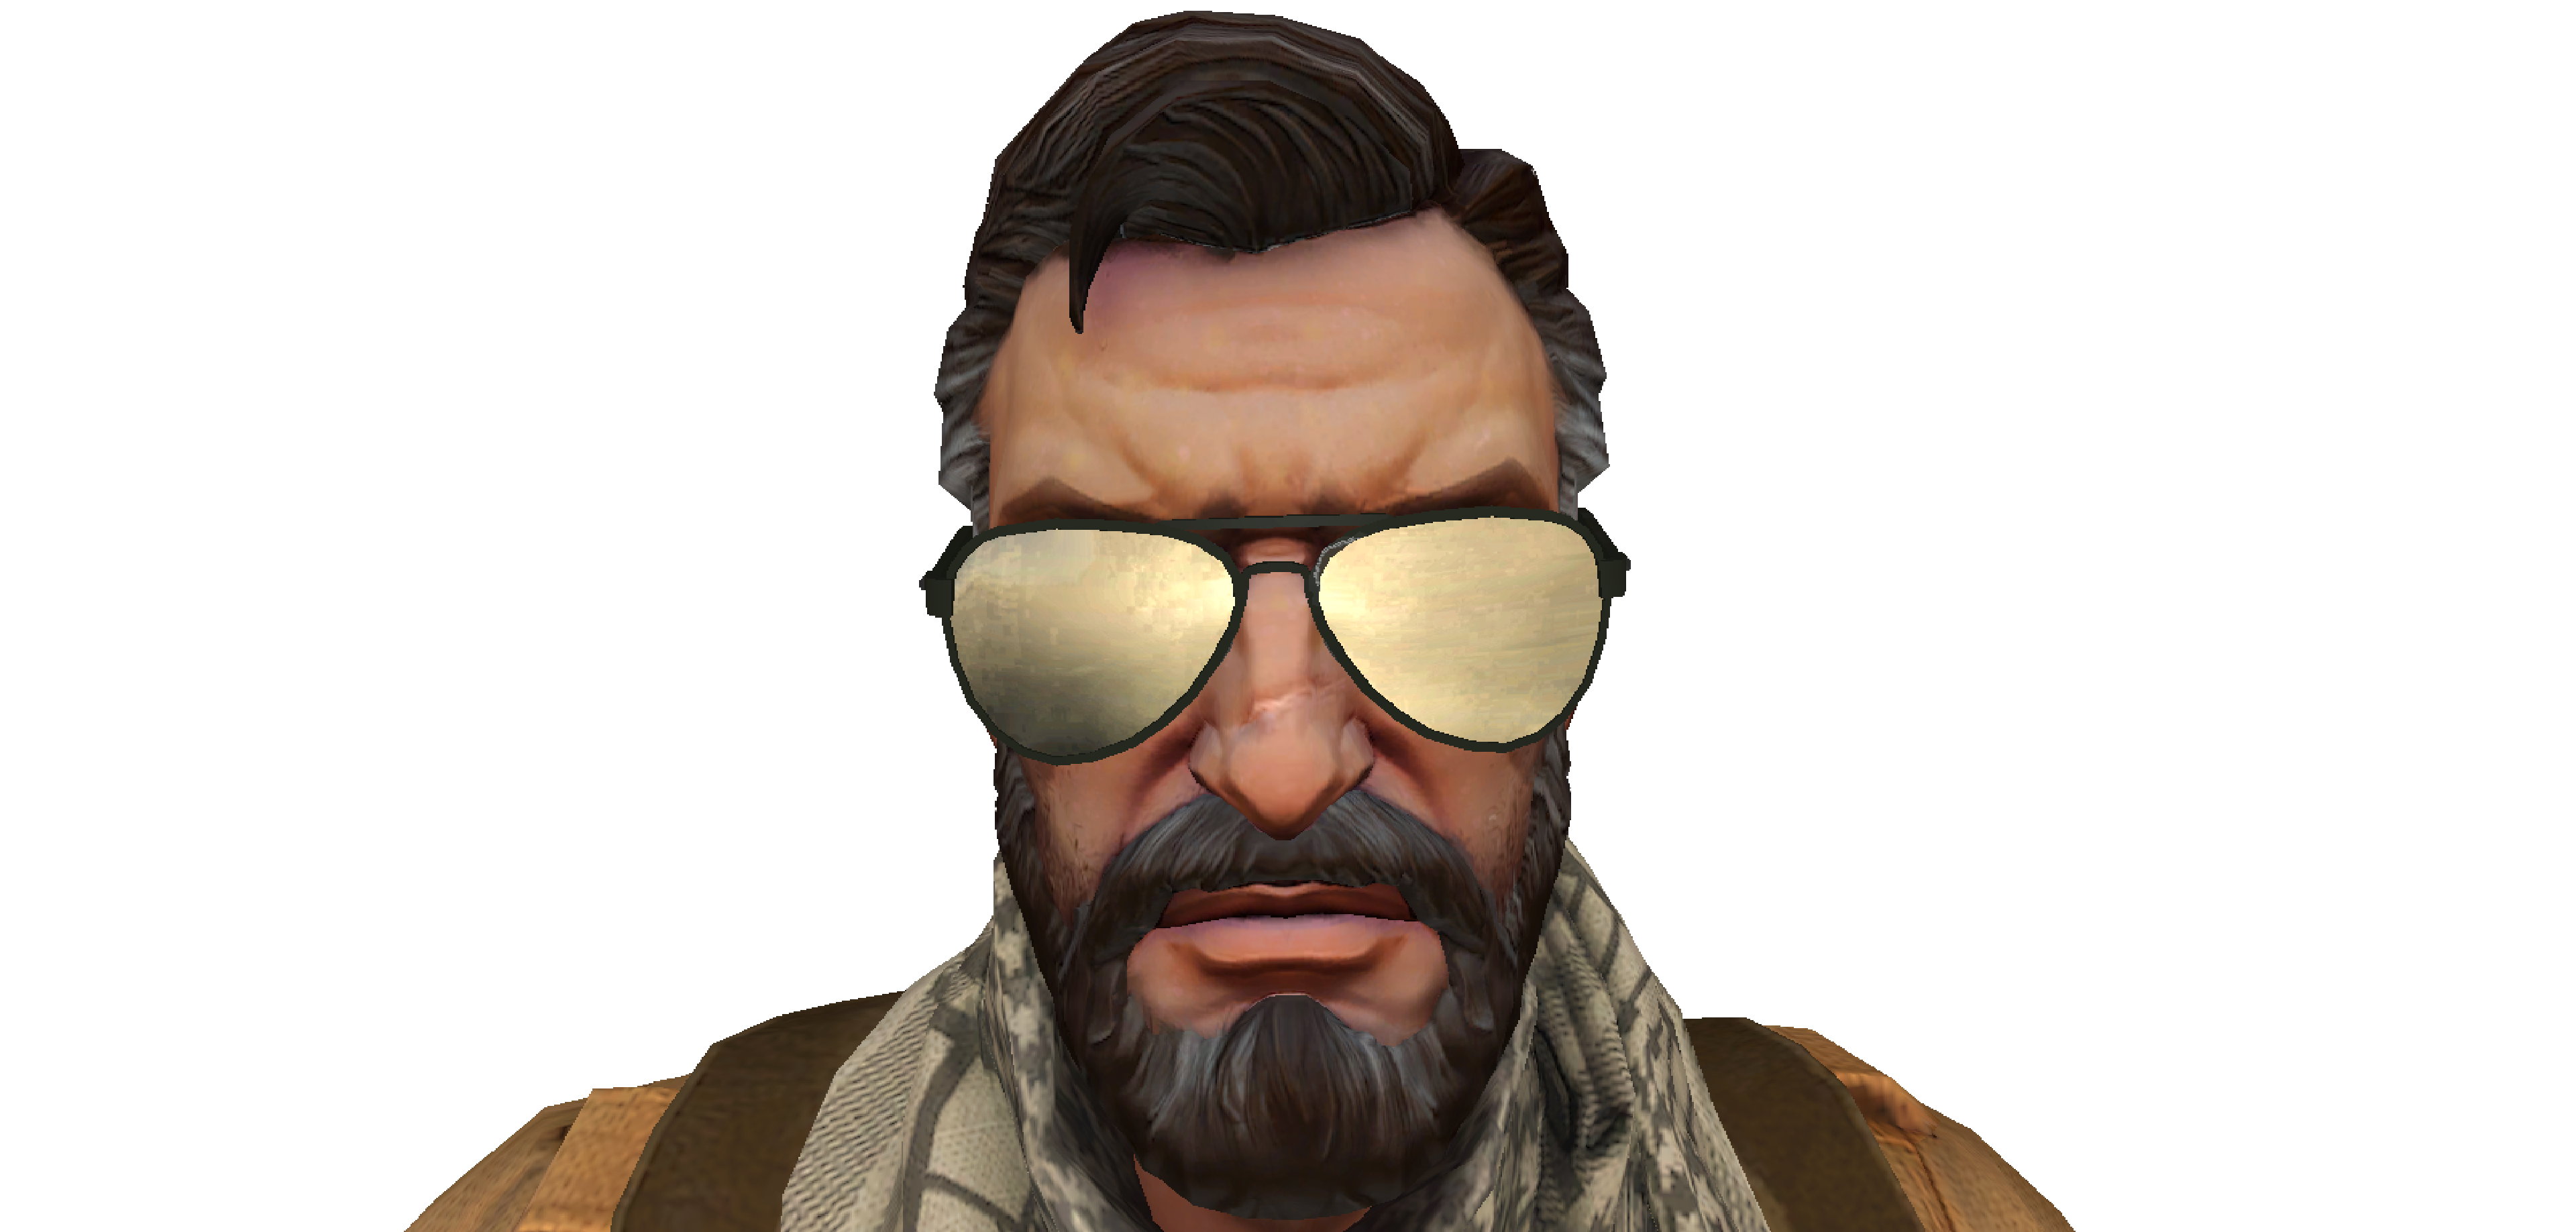 Terrorist beard png. Let s give this